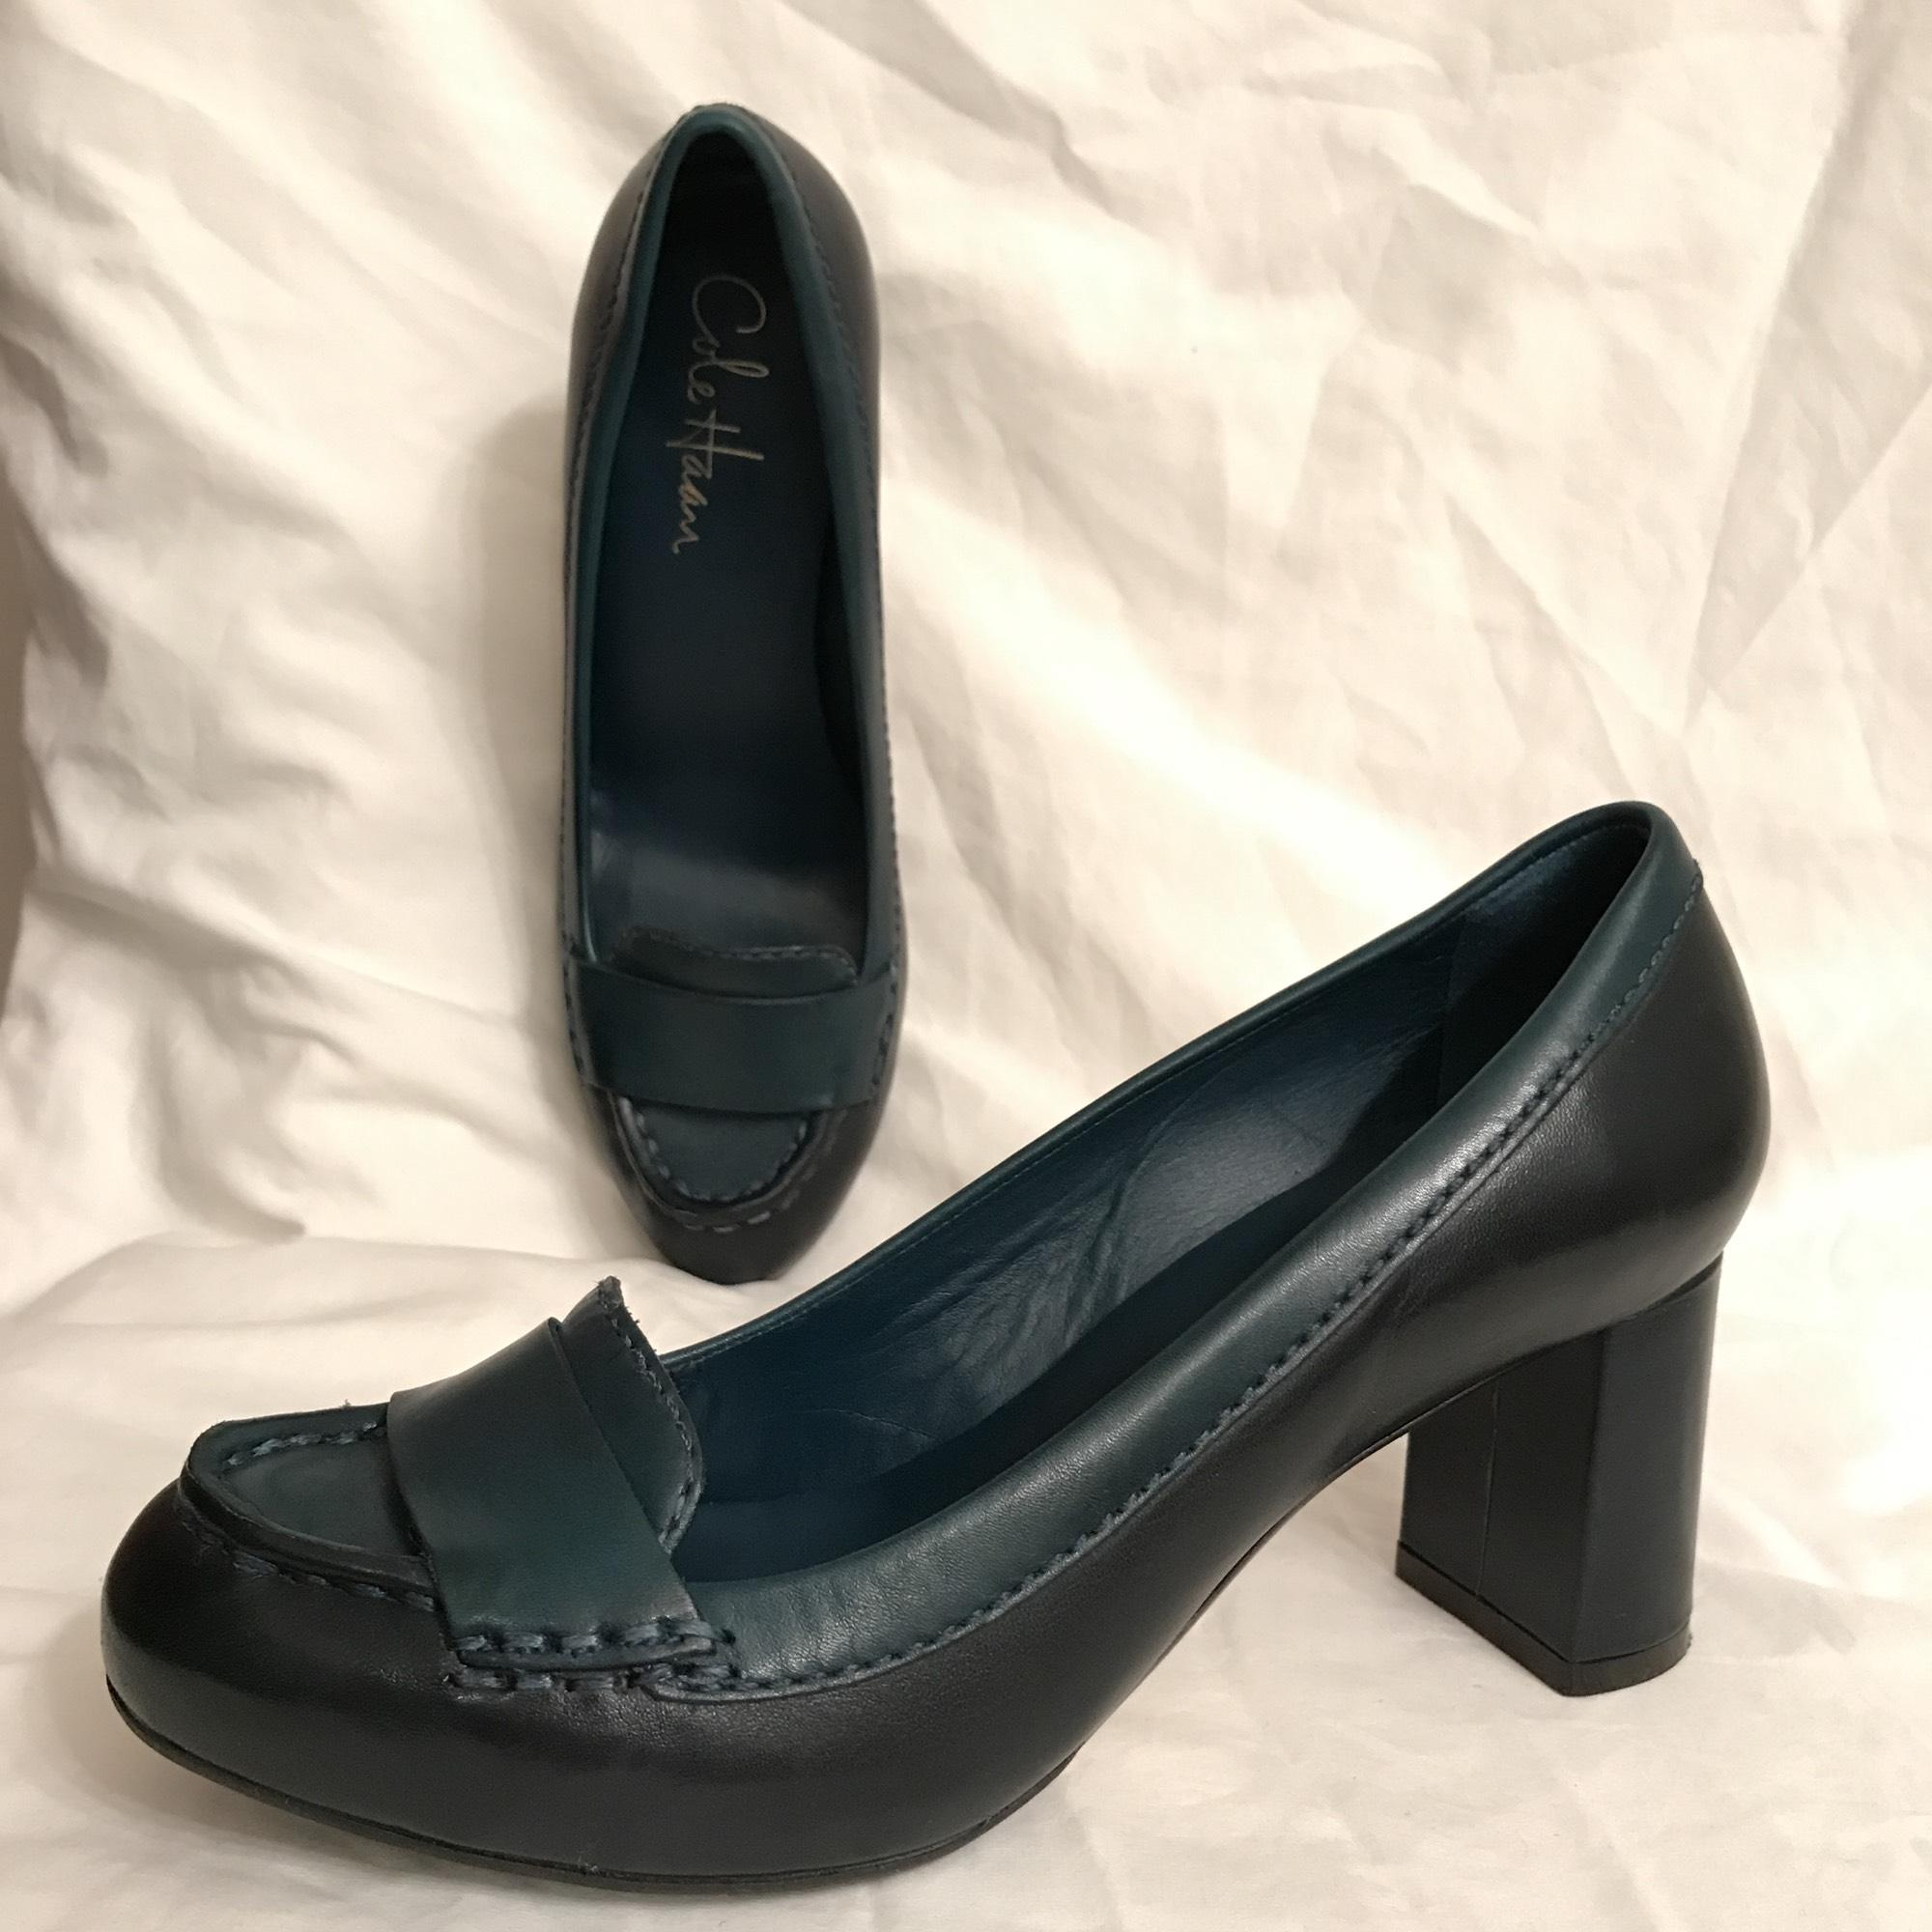 Cole Haan Air Marion Patent Leather Pumps buy cheap buy discounts pNPJXT5MH